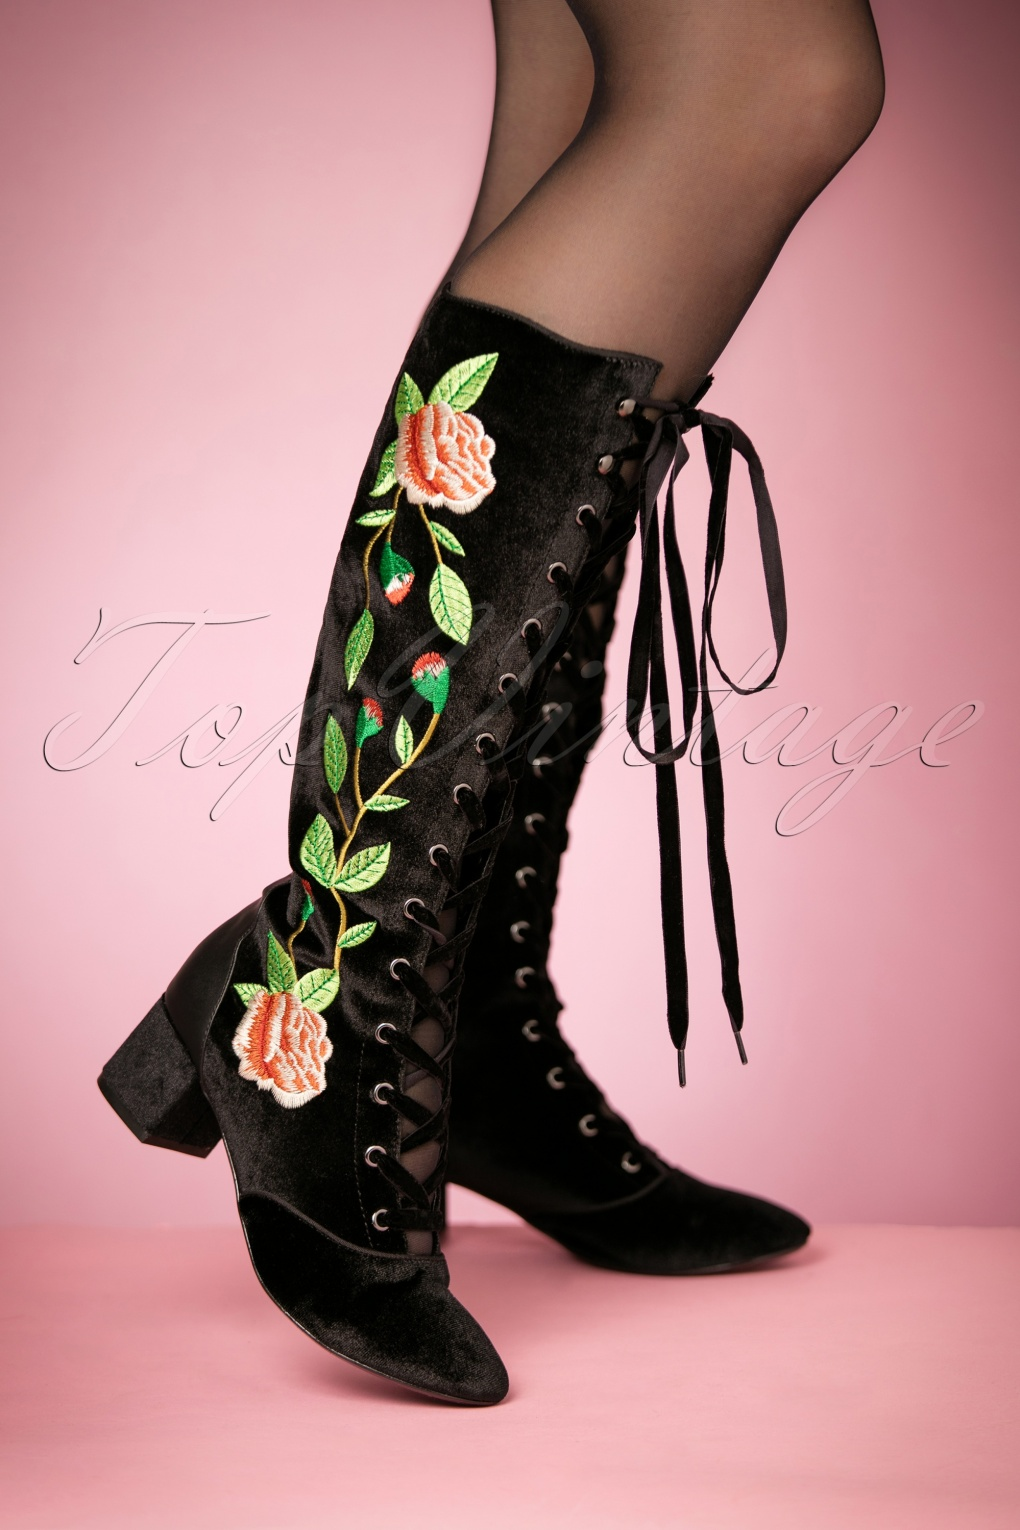 Vintage Style Shoes, Vintage Inspired Shoes 30s Sasha Floral Lace-Up Boots in Black Velvet £126.28 AT vintagedancer.com